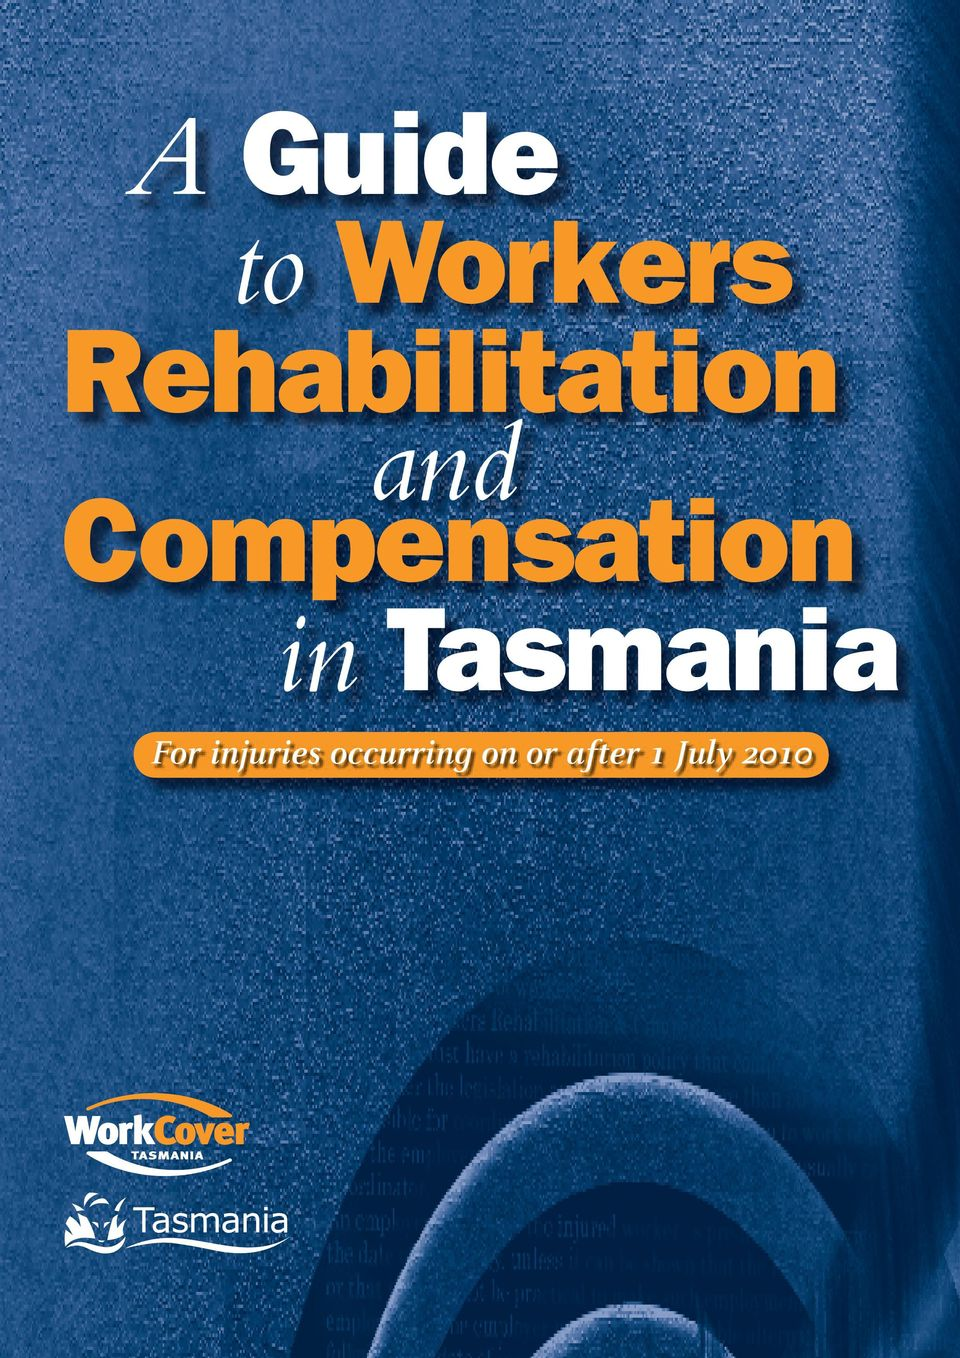 Compensation in Tasmania